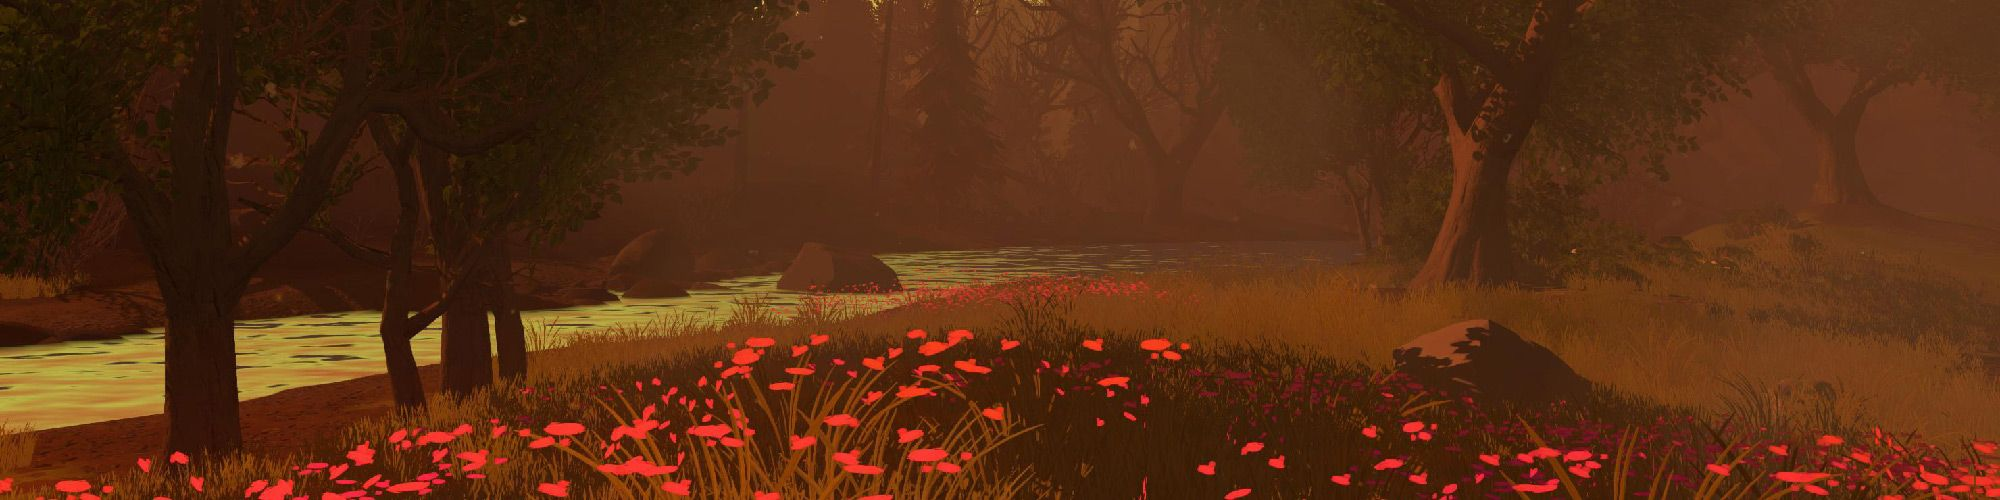 Header Red Firewatch Anime Background Adventure Video Game